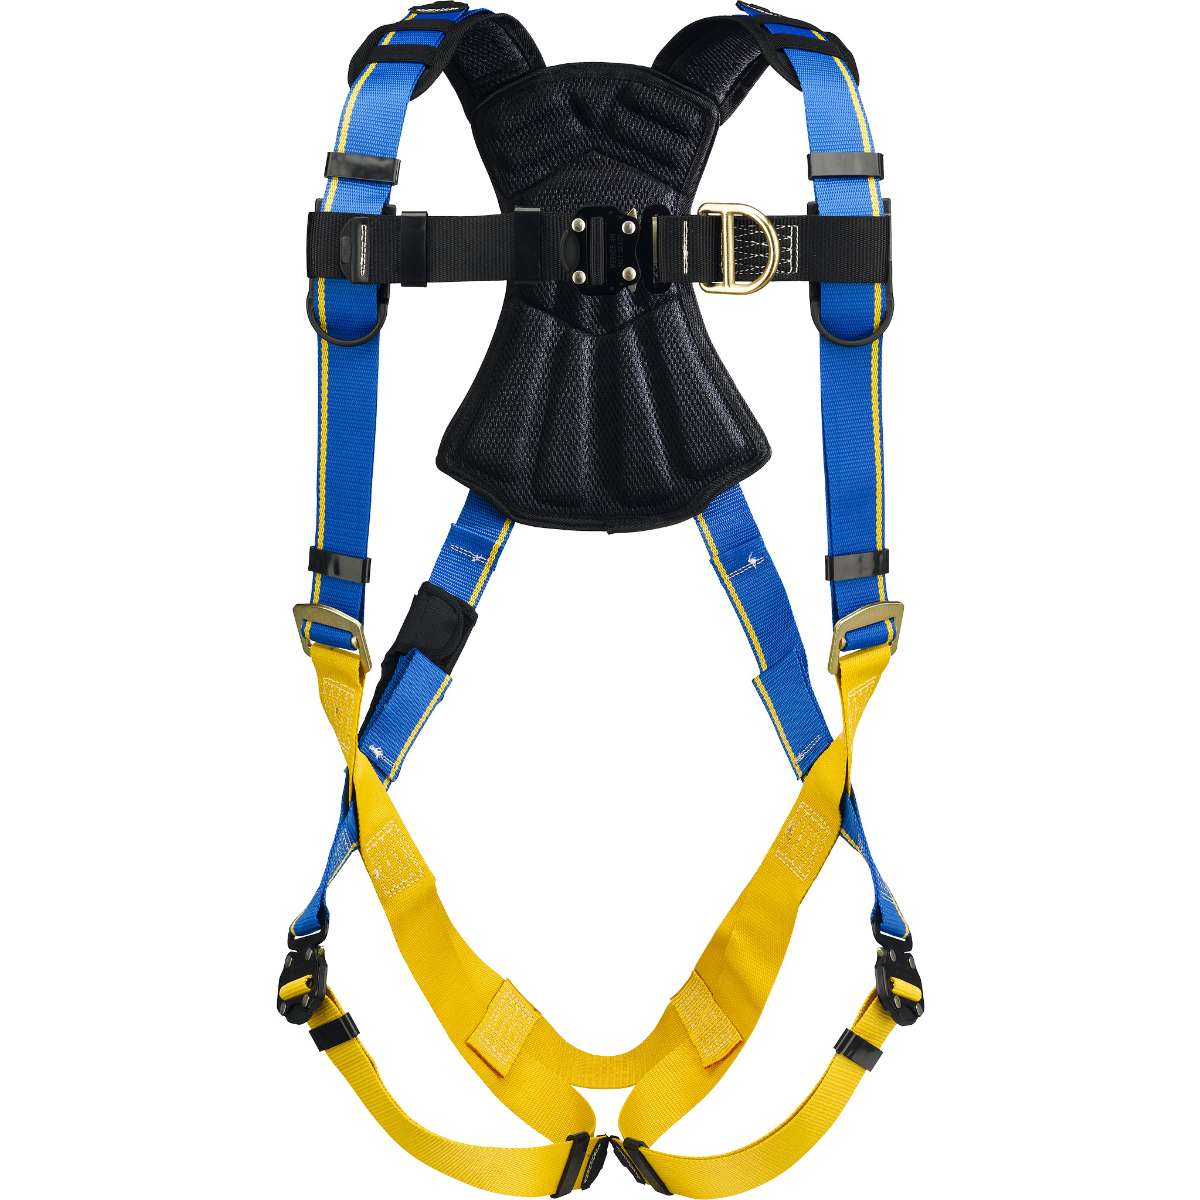 Werner Climbing Harness - 2 D Rings